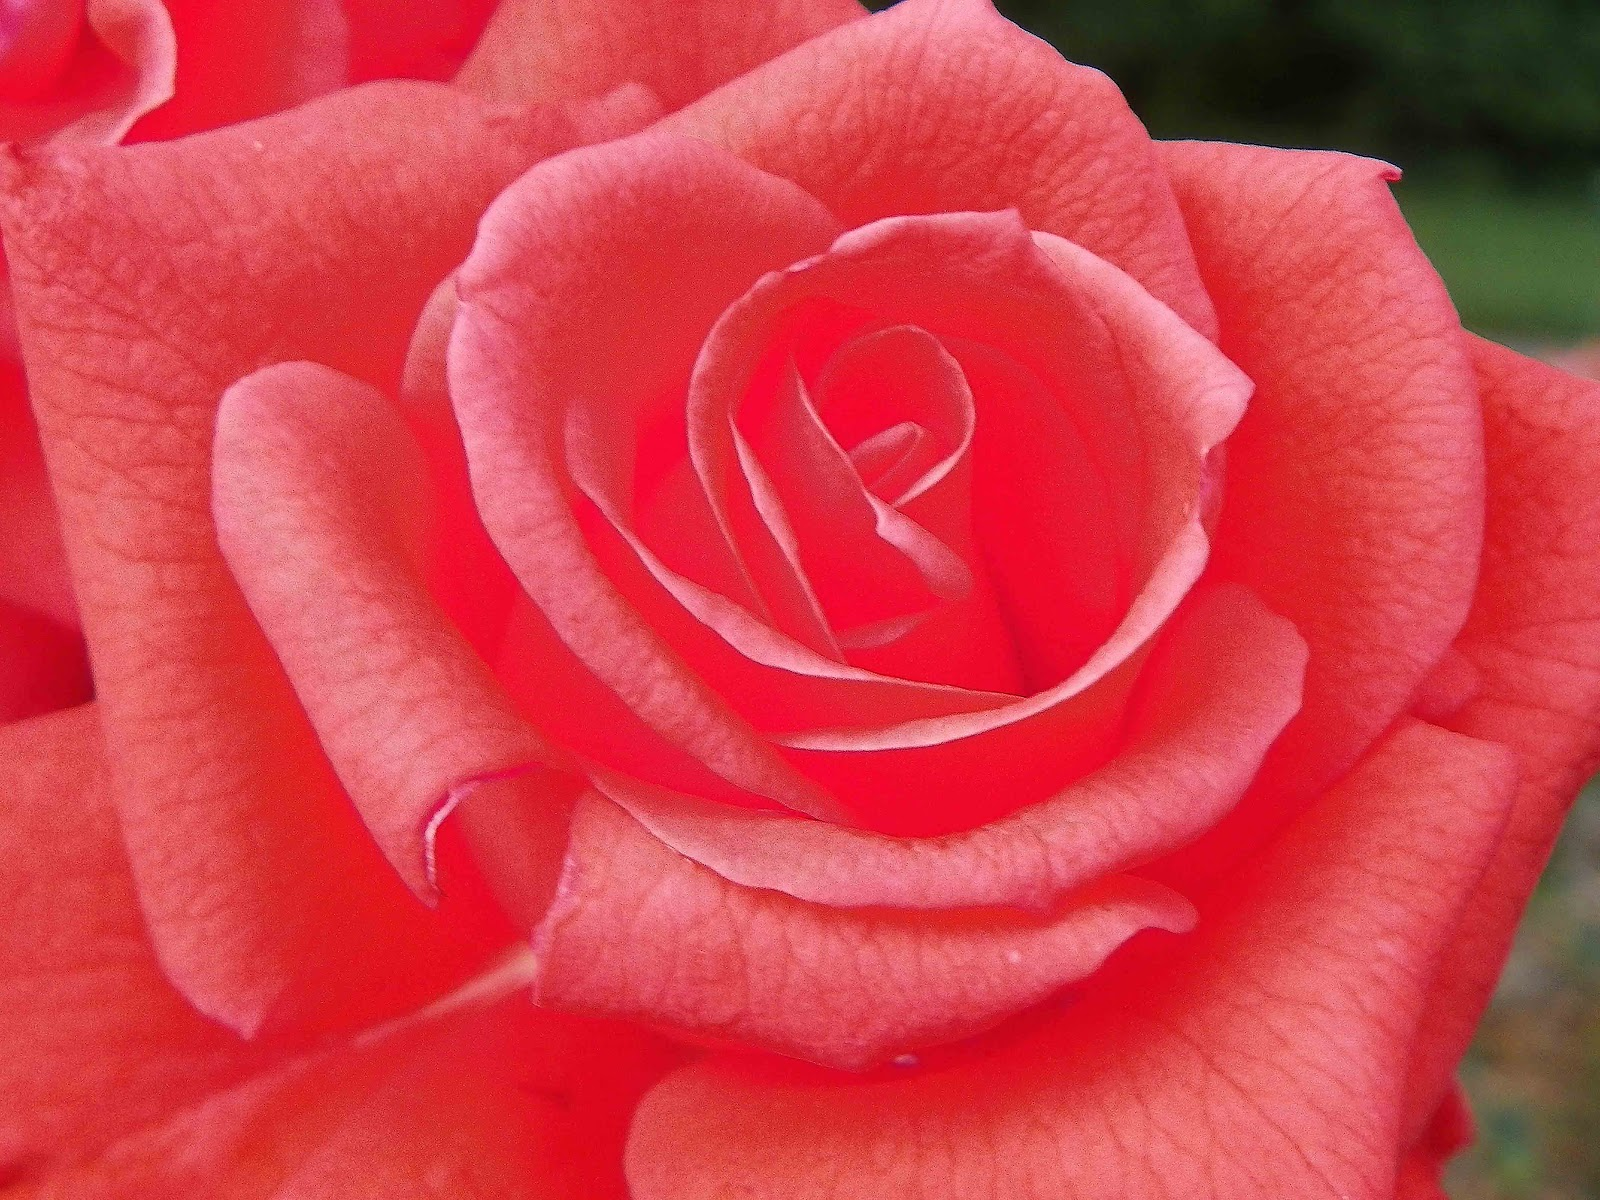 Rose Wallpaper Hd Tumblr For Walls Mobile Phone Widescreen Desktop Full Size Dwonload 2013 Pink